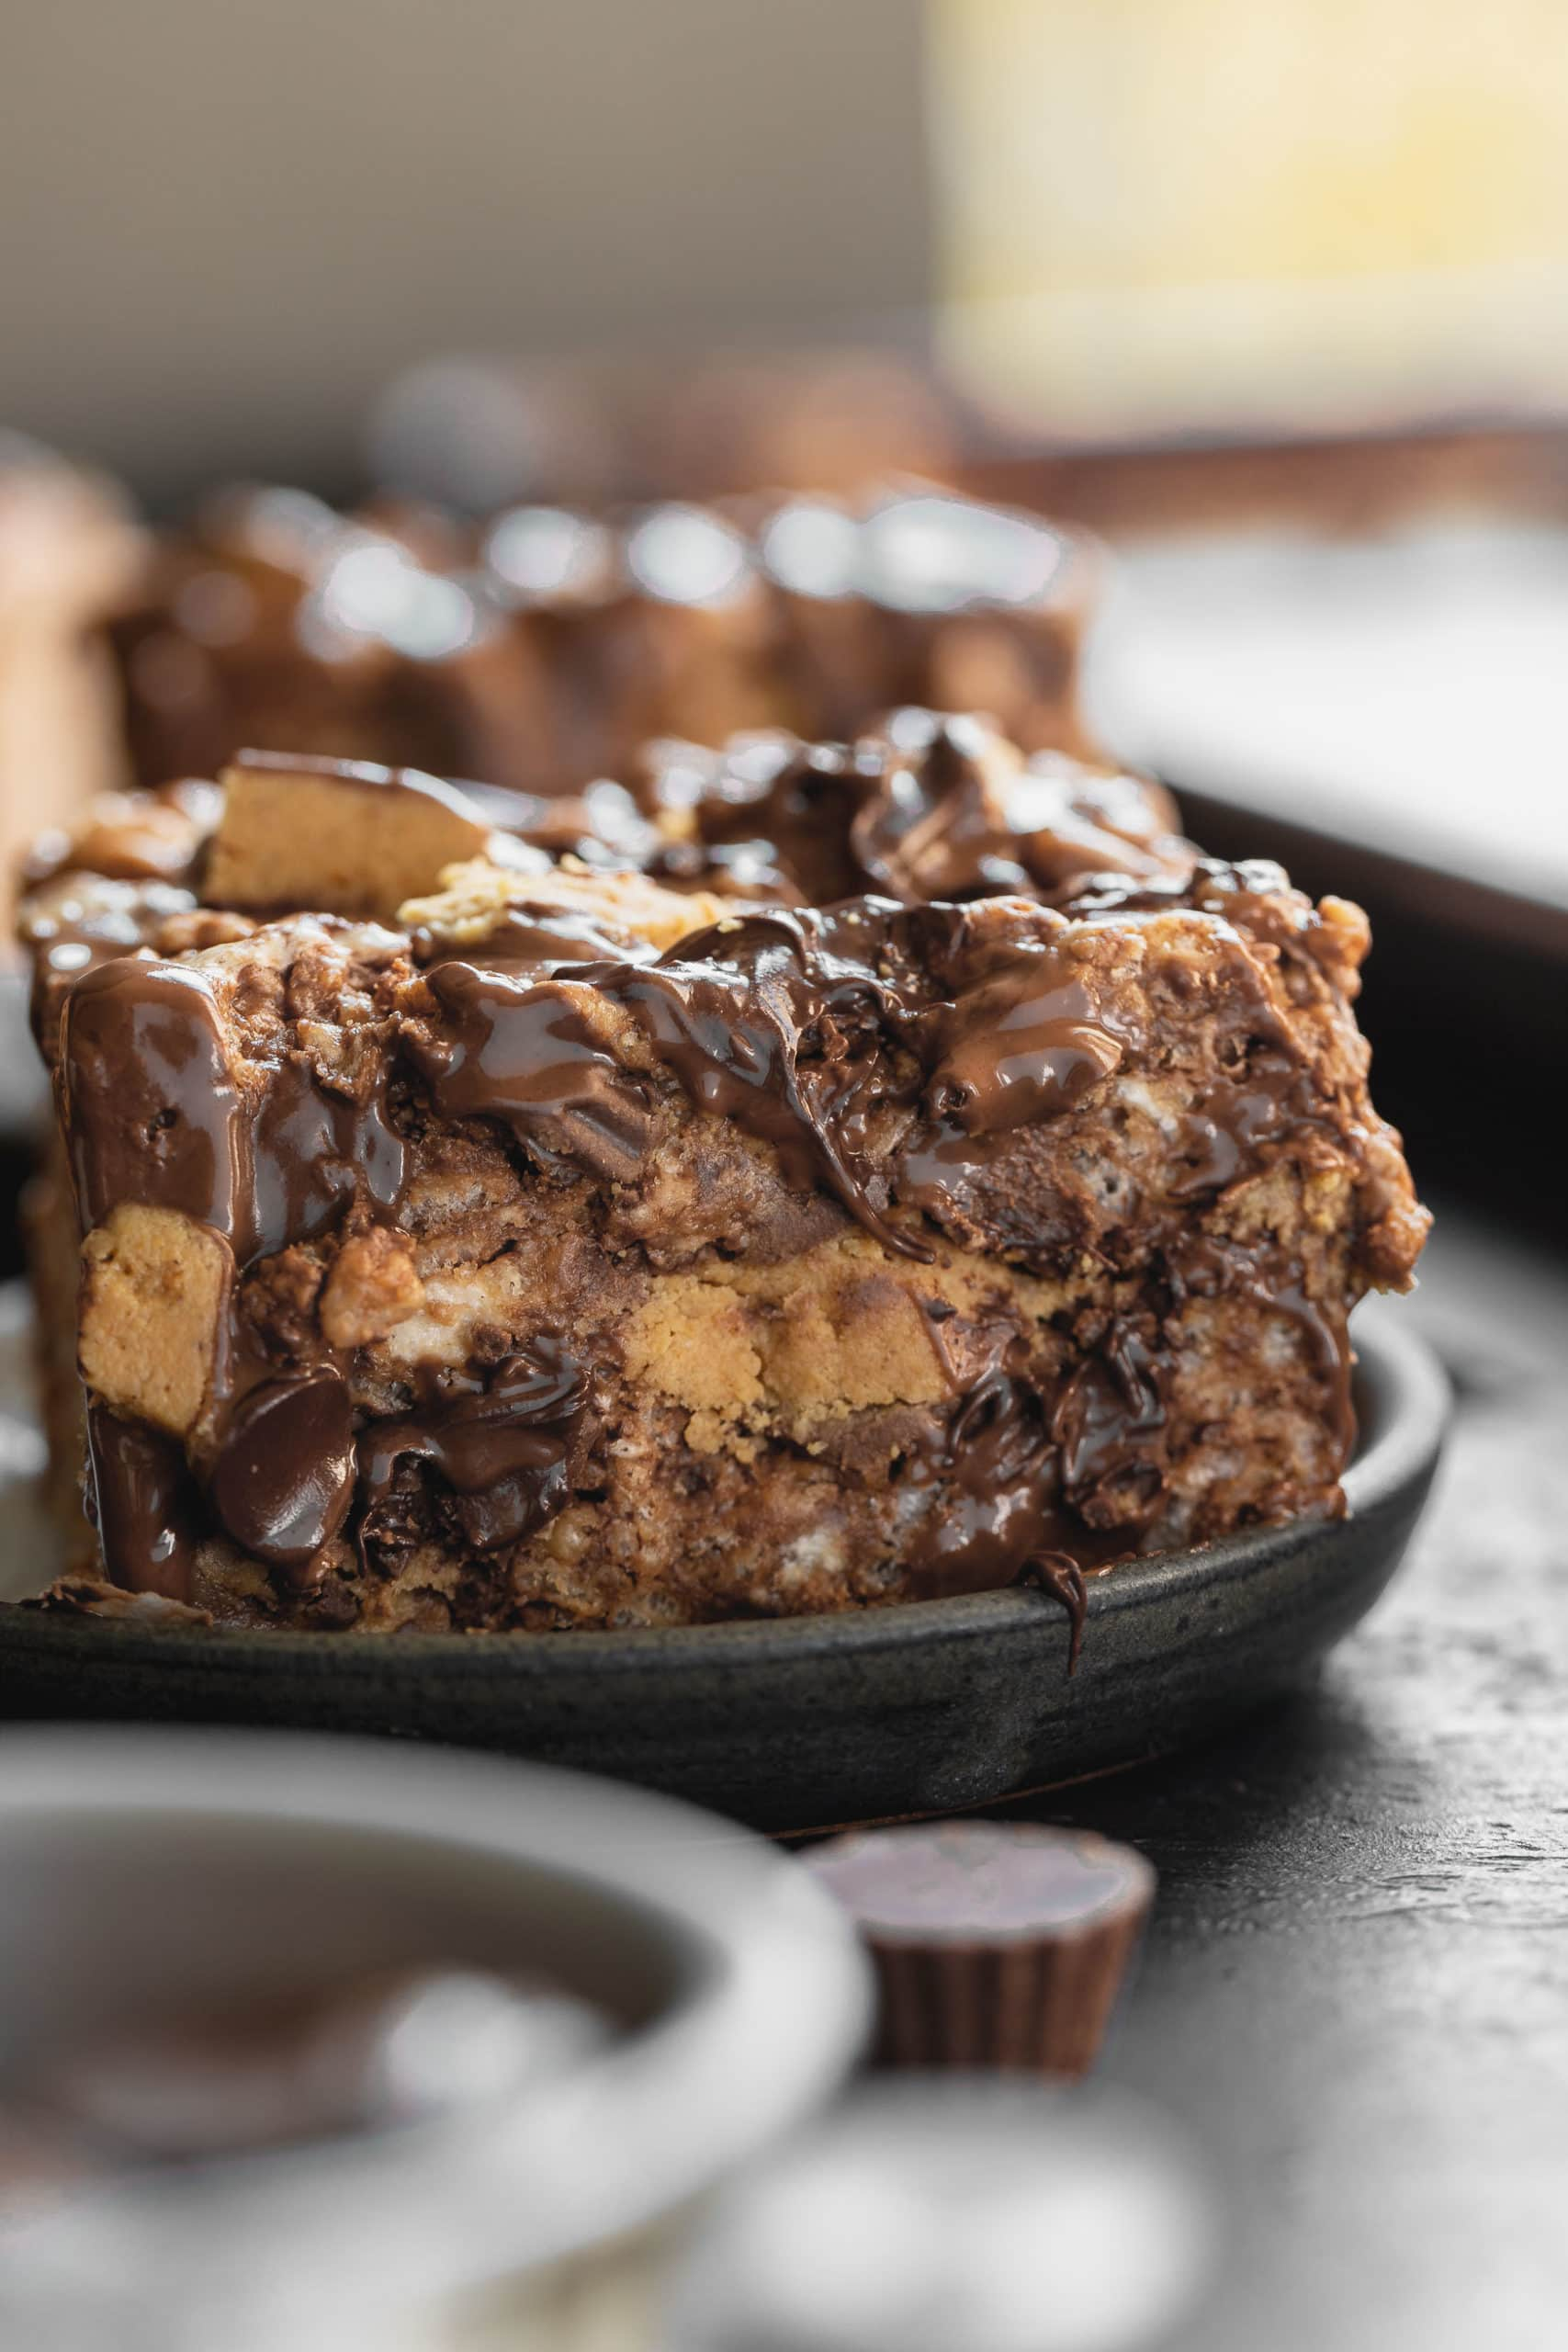 a photo of the cross section of a peanut butter rice krispies treat that is loaded with chunks of reese's peanut butter cups and melty chocolate chips.